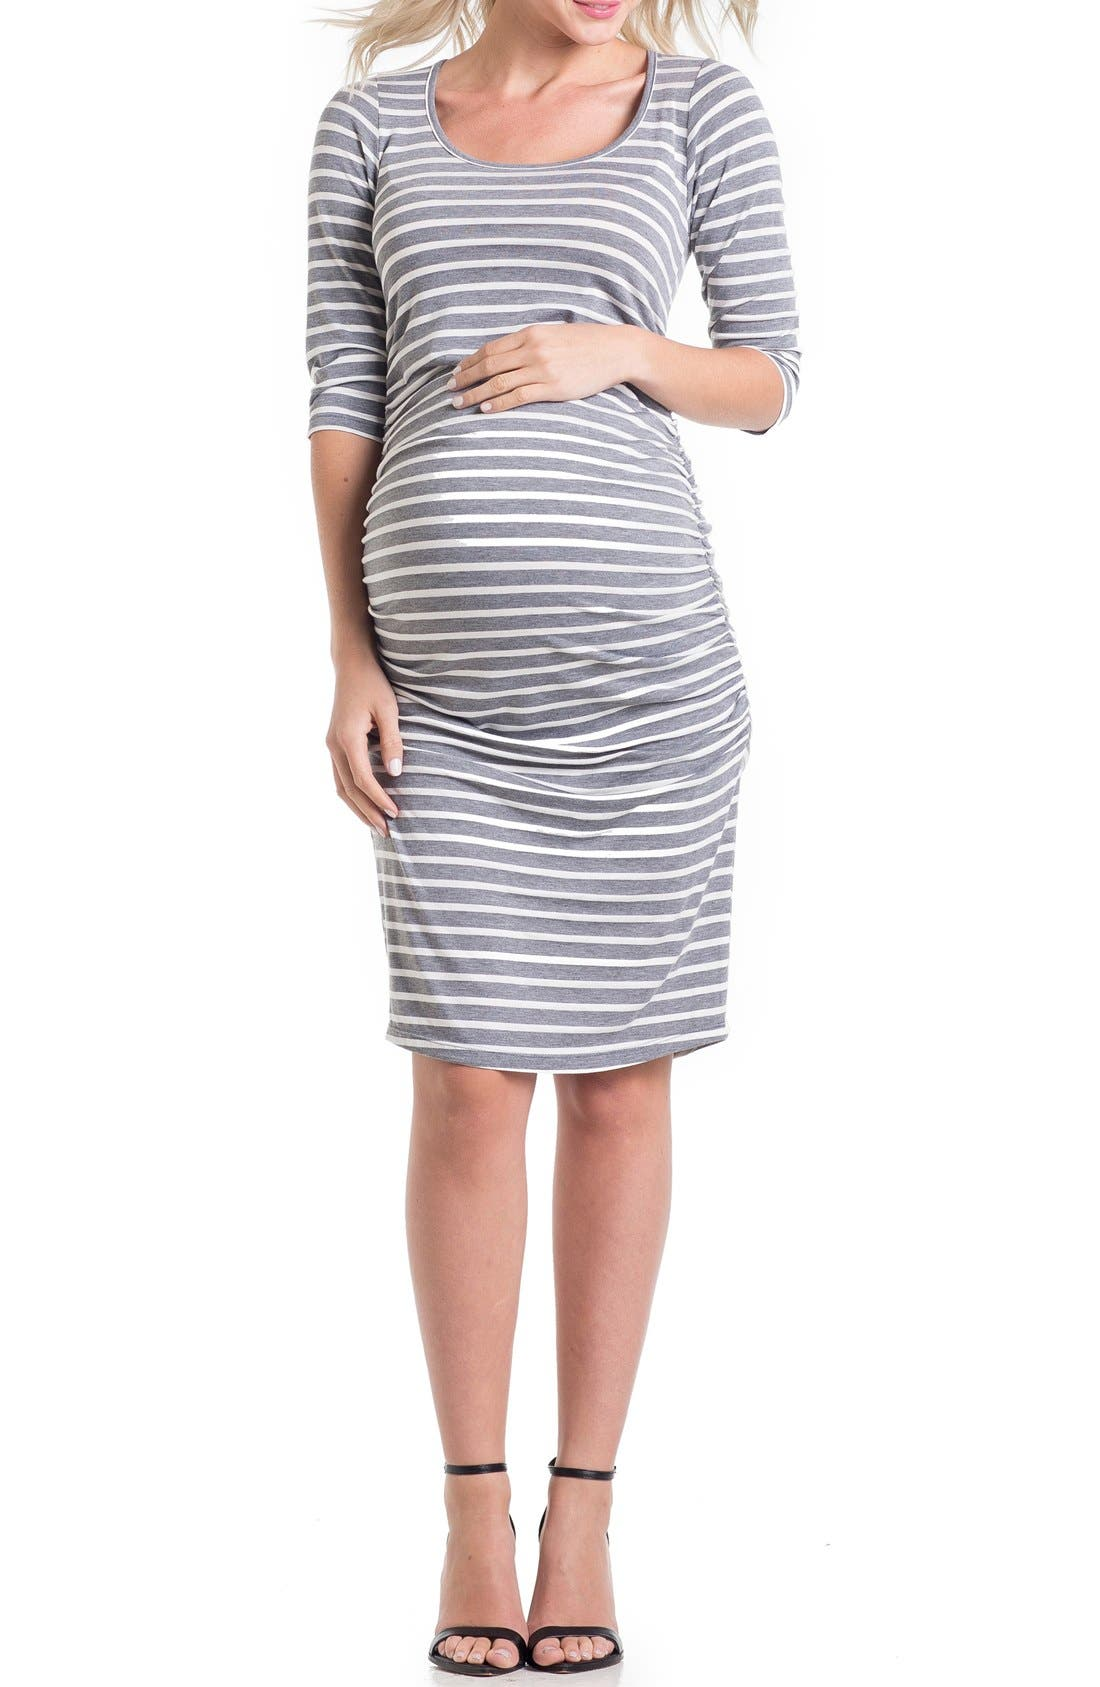 Lilac Clothing Stripe Maternity Dress